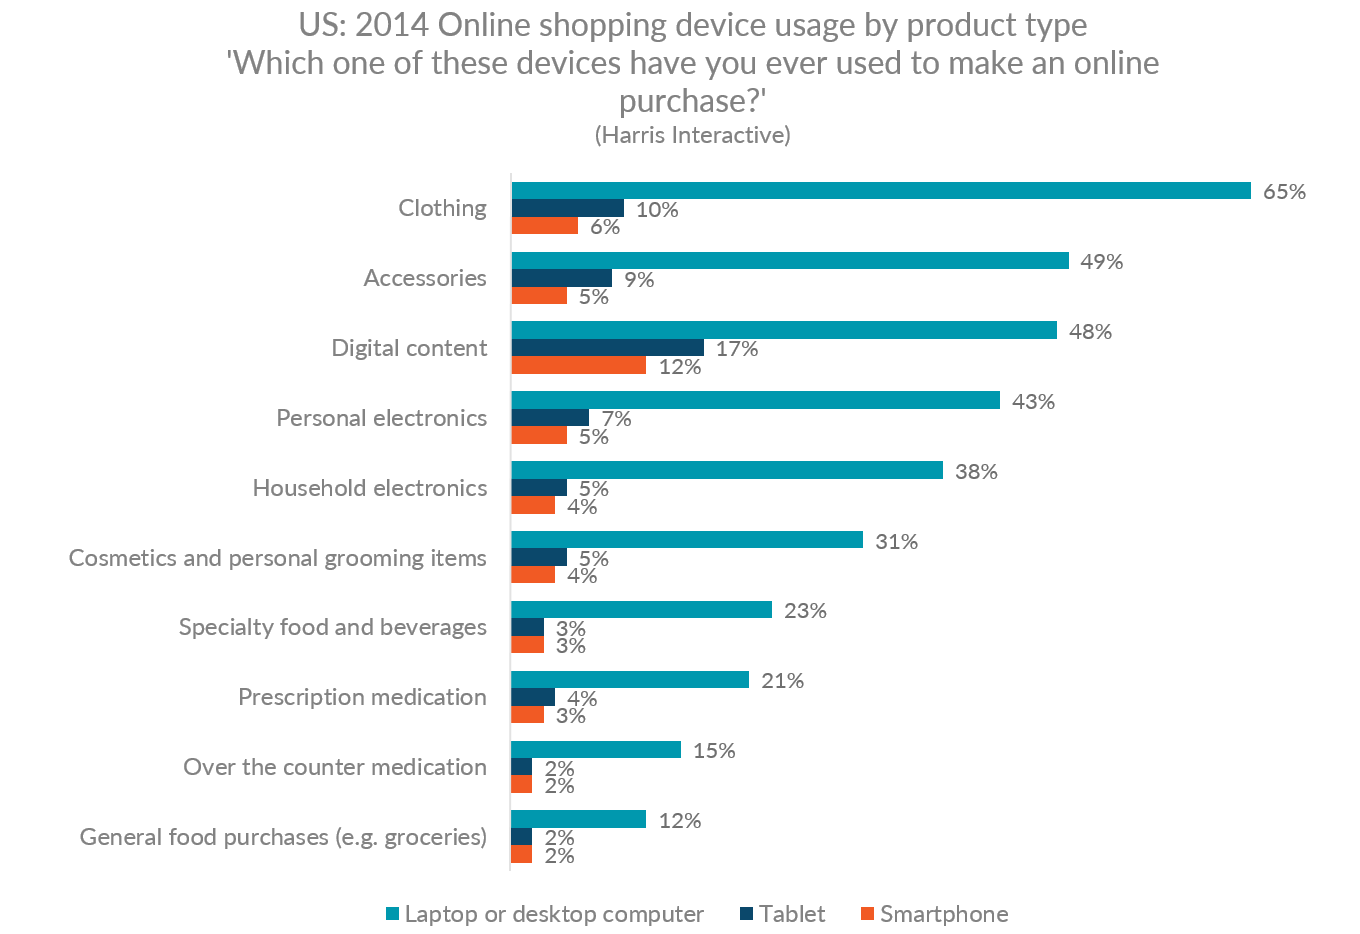 Graph showing the devices used for online shopping by product category in the US